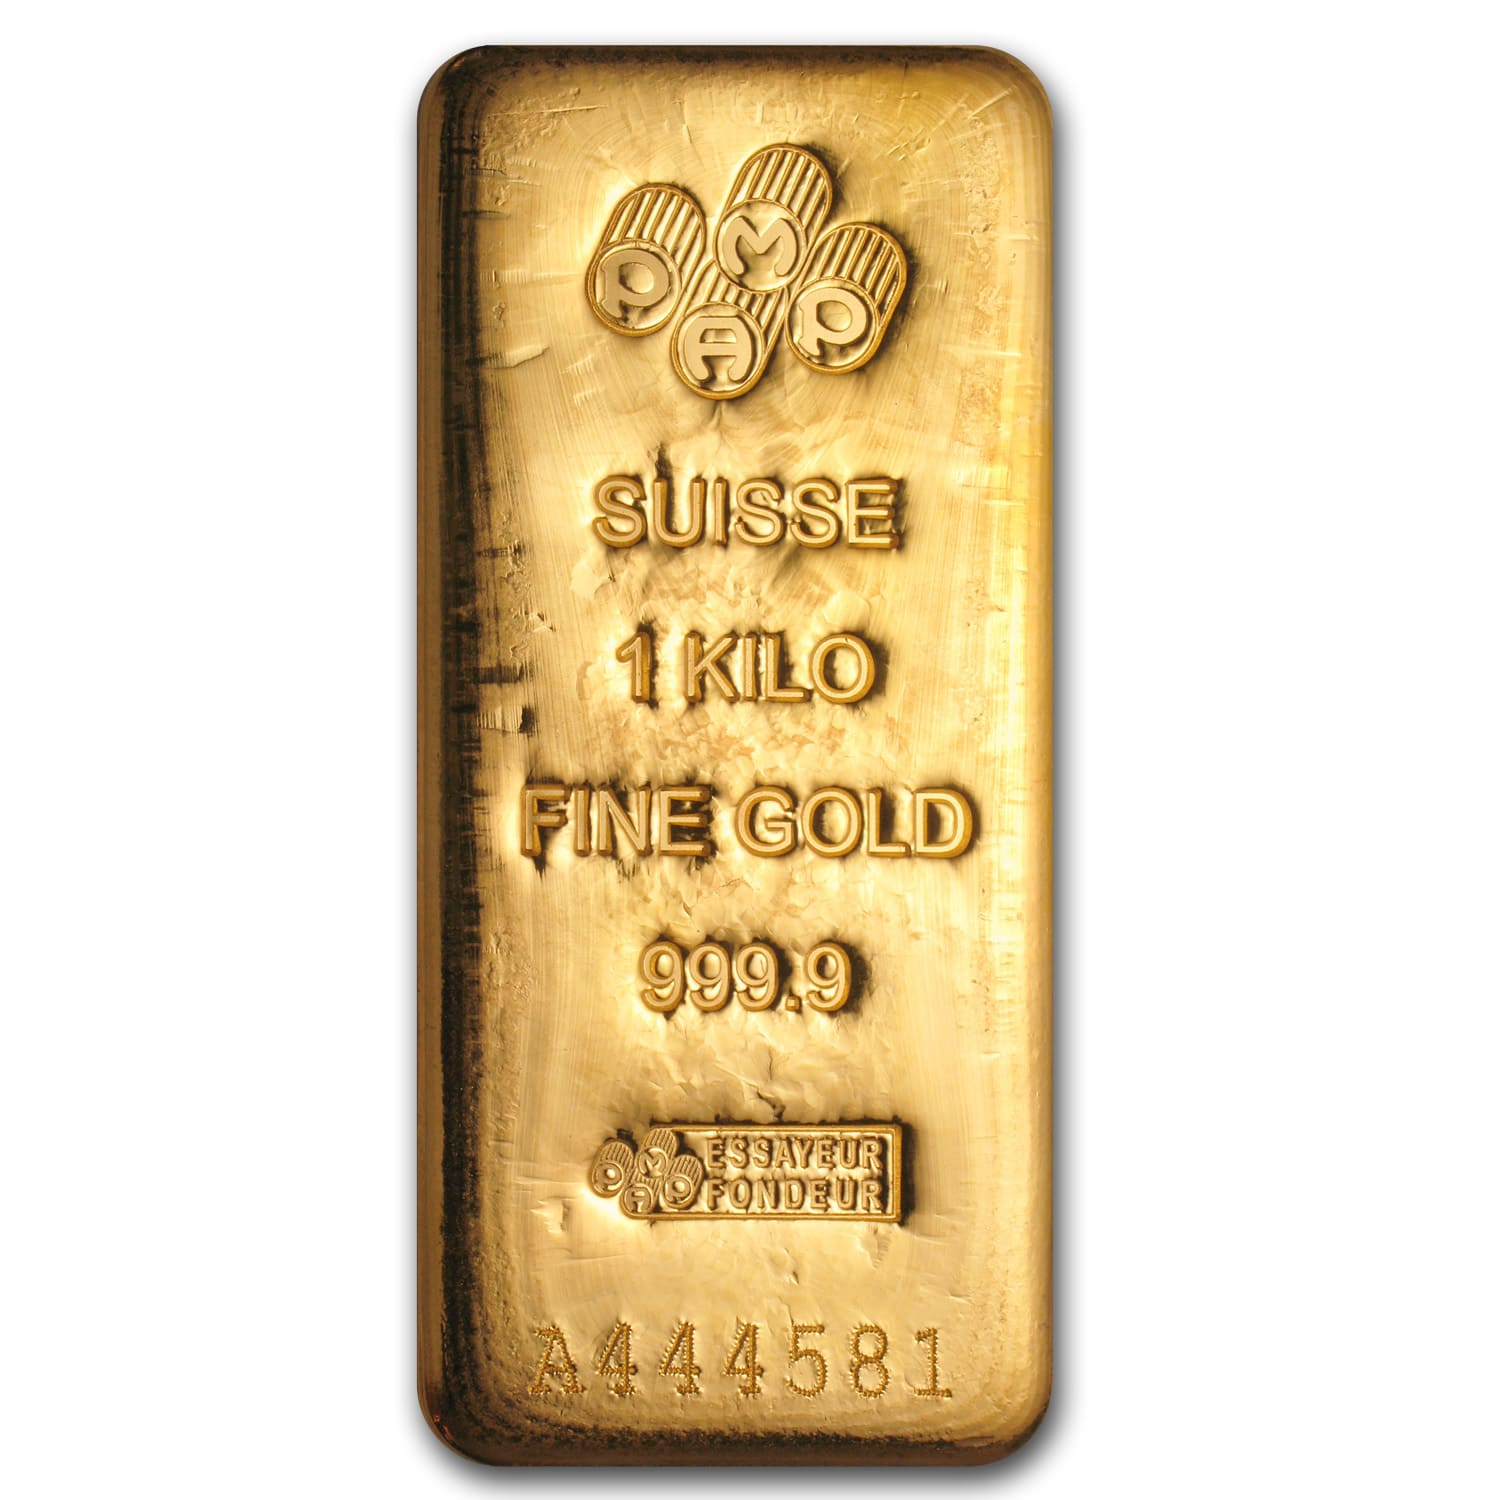 1 kilo Gold Bar - Pamp Suisse (Apr 3)